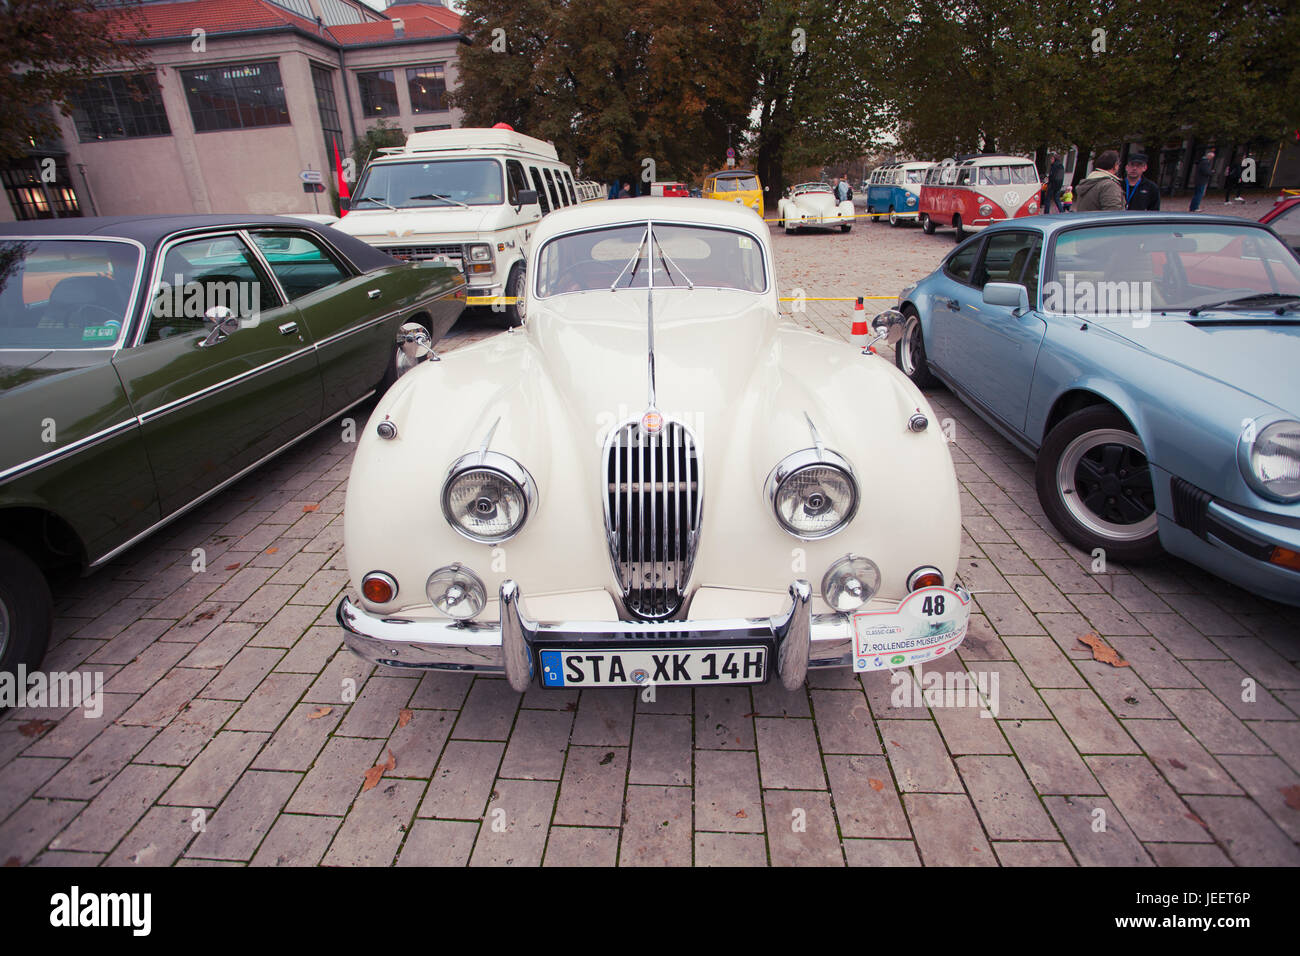 Classic Jaguar Coupe Car At Old Timer Car Show, Munich, Germany